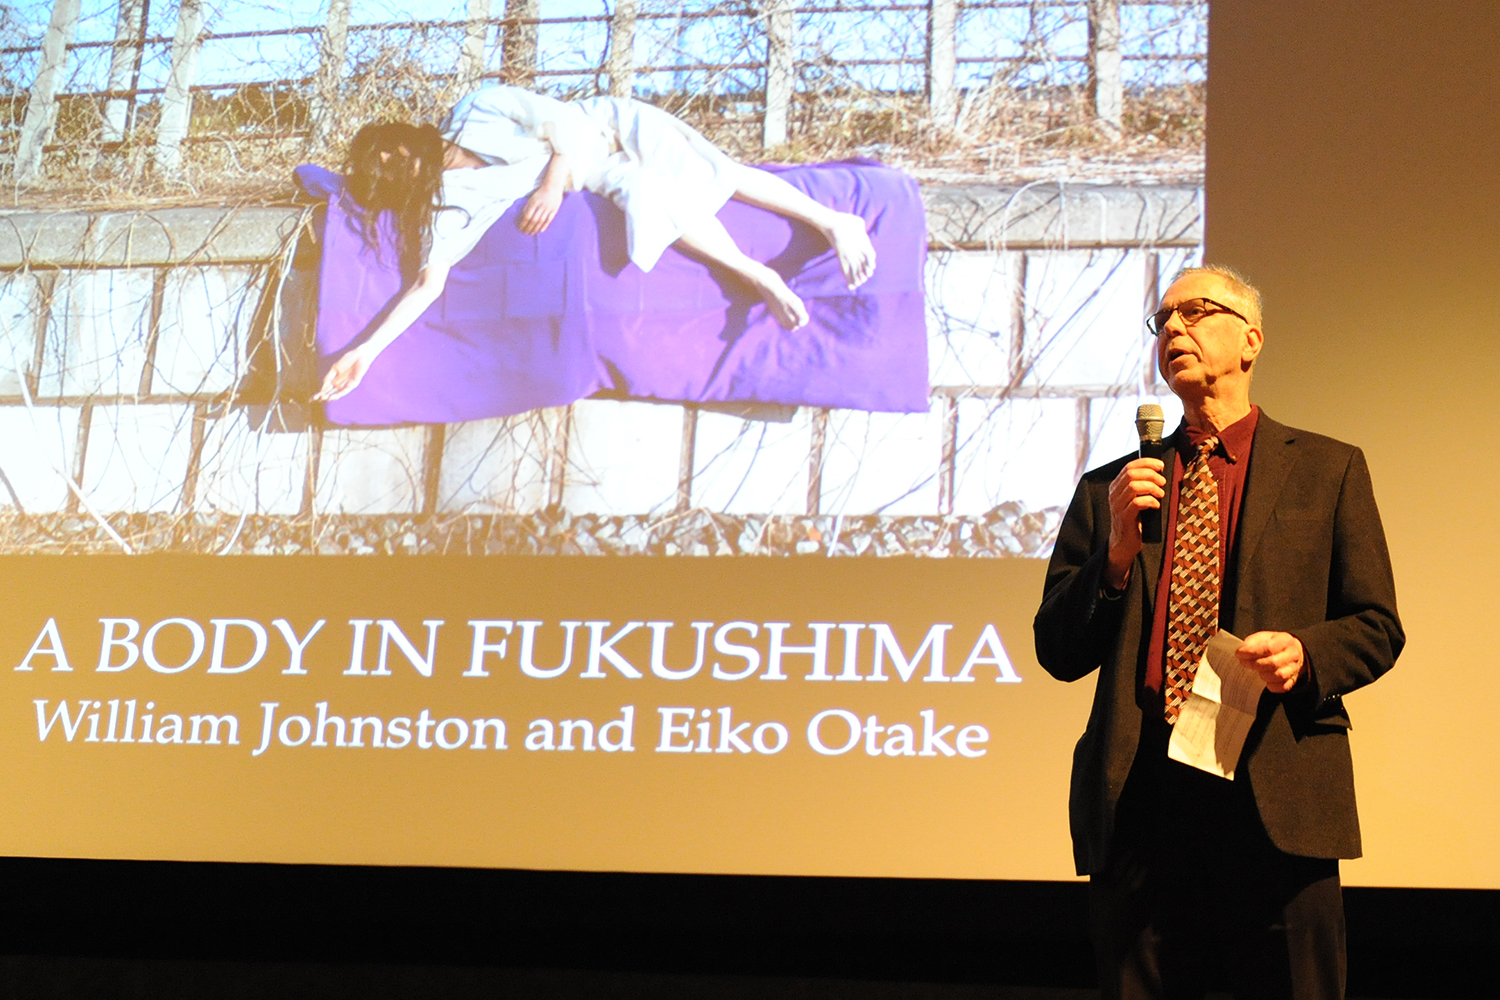 Patrick Dowdey, curator for the Freeman Center for East Asian Studies gallery, introduced the <em>Body in Fukushima</em> exhibit Feb. 5.